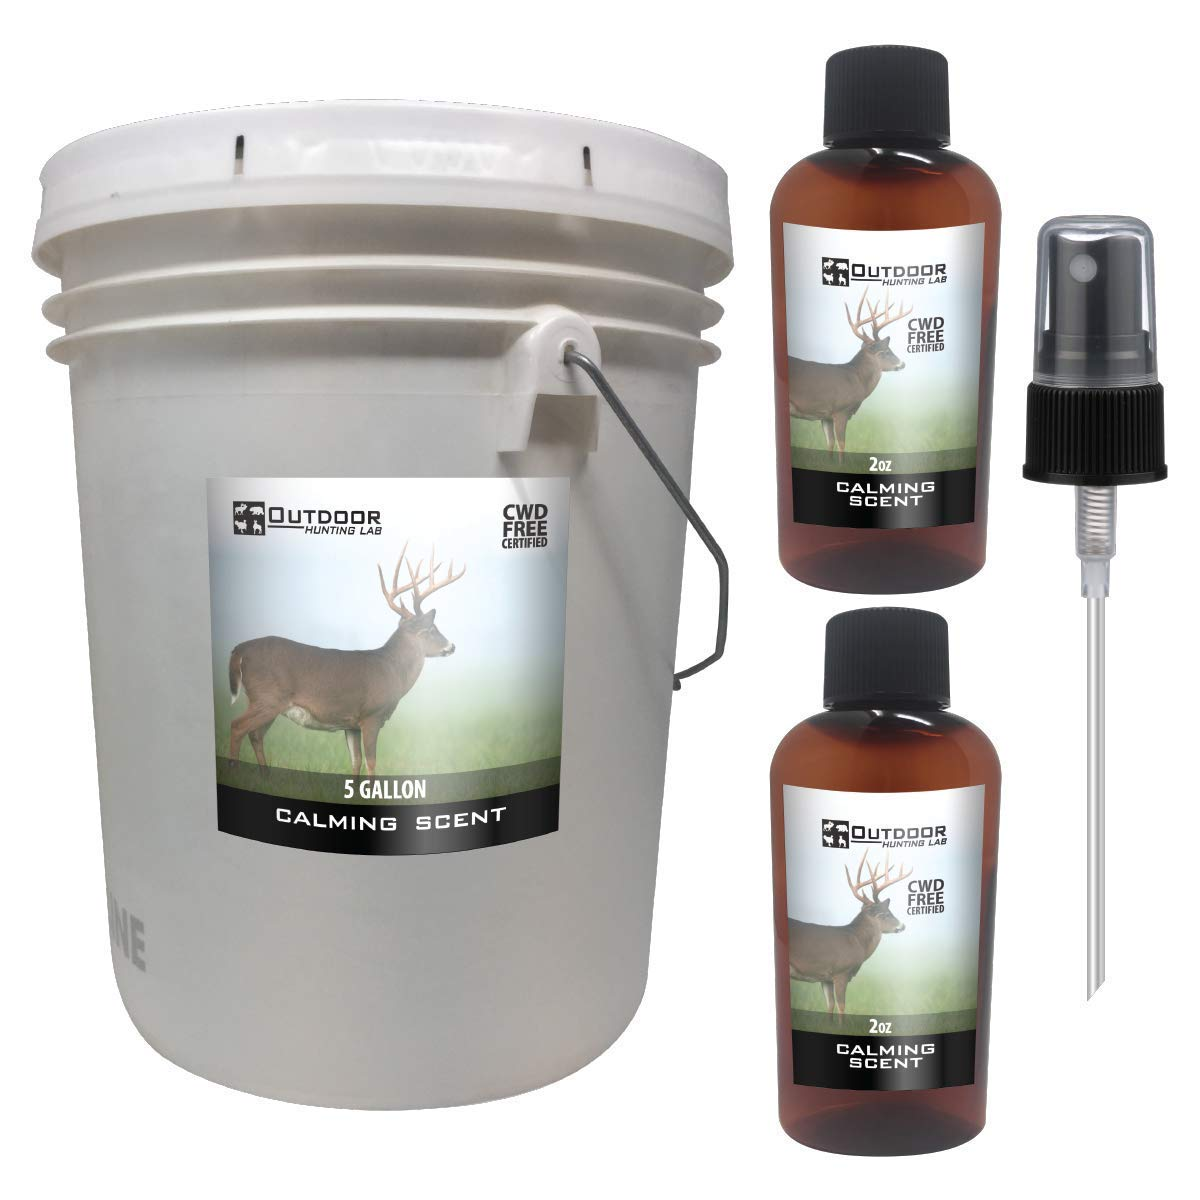 Outdoor Hunting Lab Calming Scent Ever Calm Deer Attractant Buck Lure Whitetail Hunting Cover Urine Pee Spray(5 Gallon) by Outdoor Hunting Lab